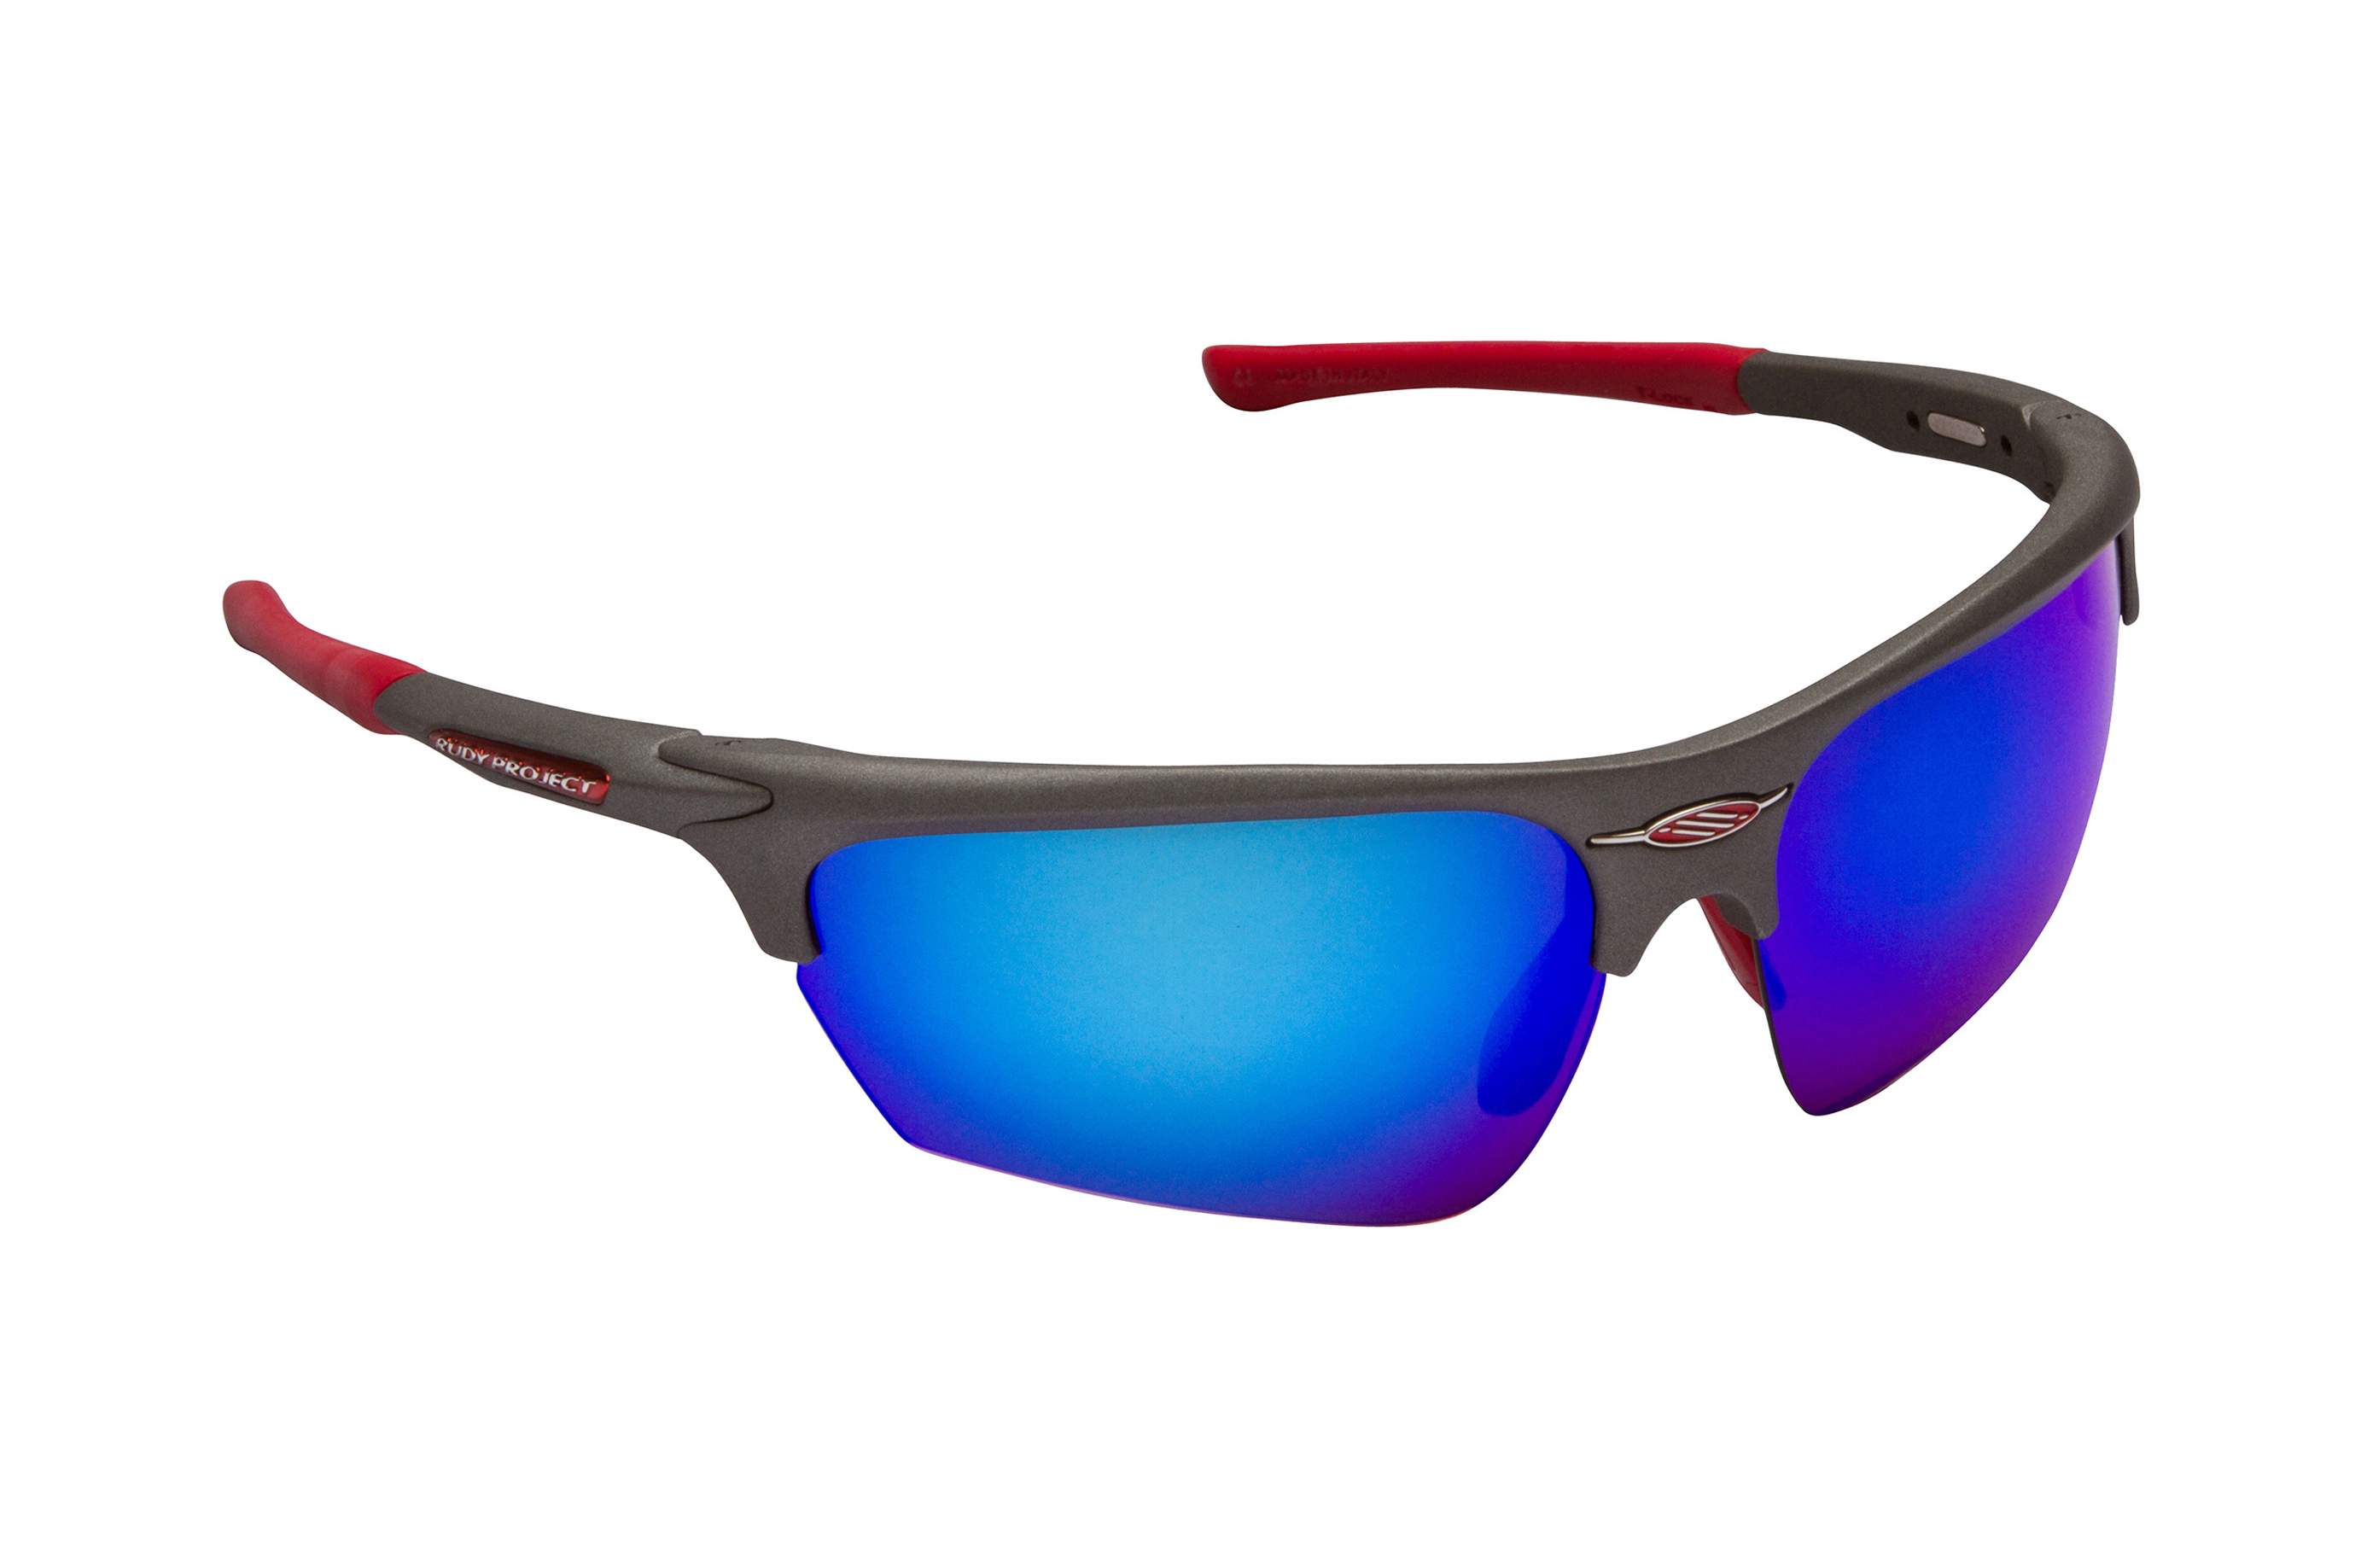 a166c0b3fb Rudy Project Noyz - Ice Blue Mirror Polarized - Seek Optics